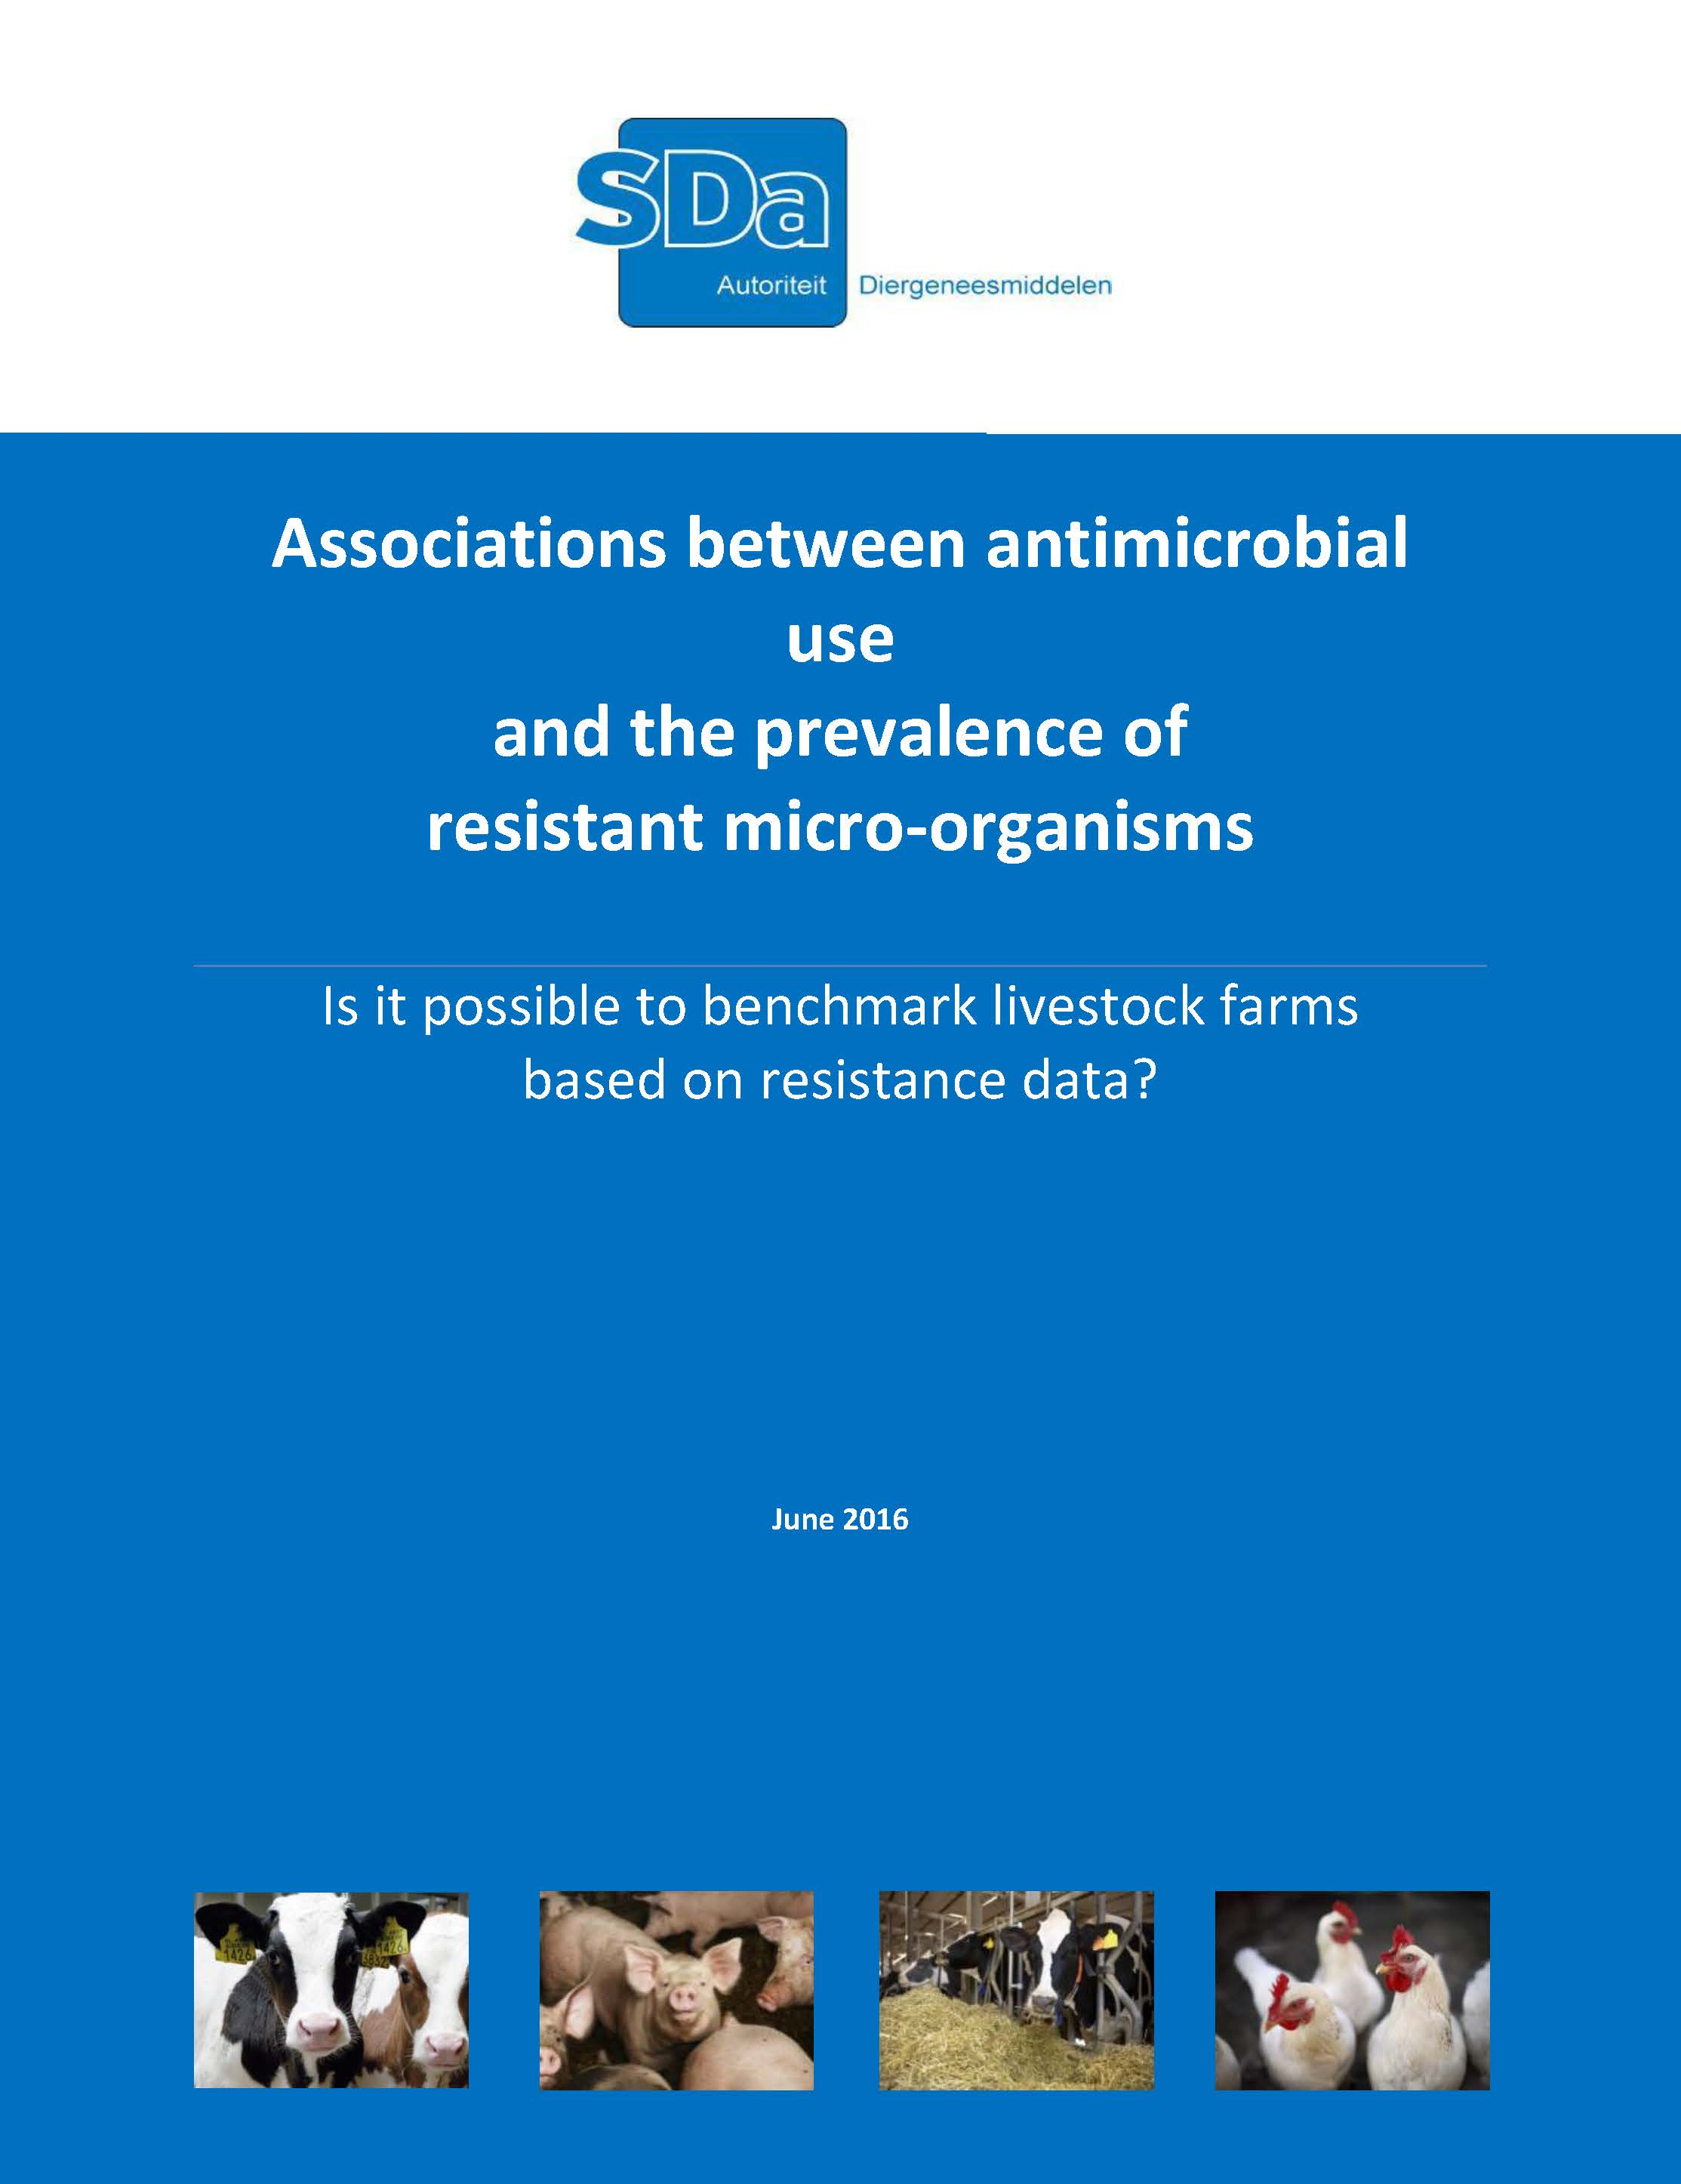 Association between antimicrobial use and the prevalence of resistant micro-organisms